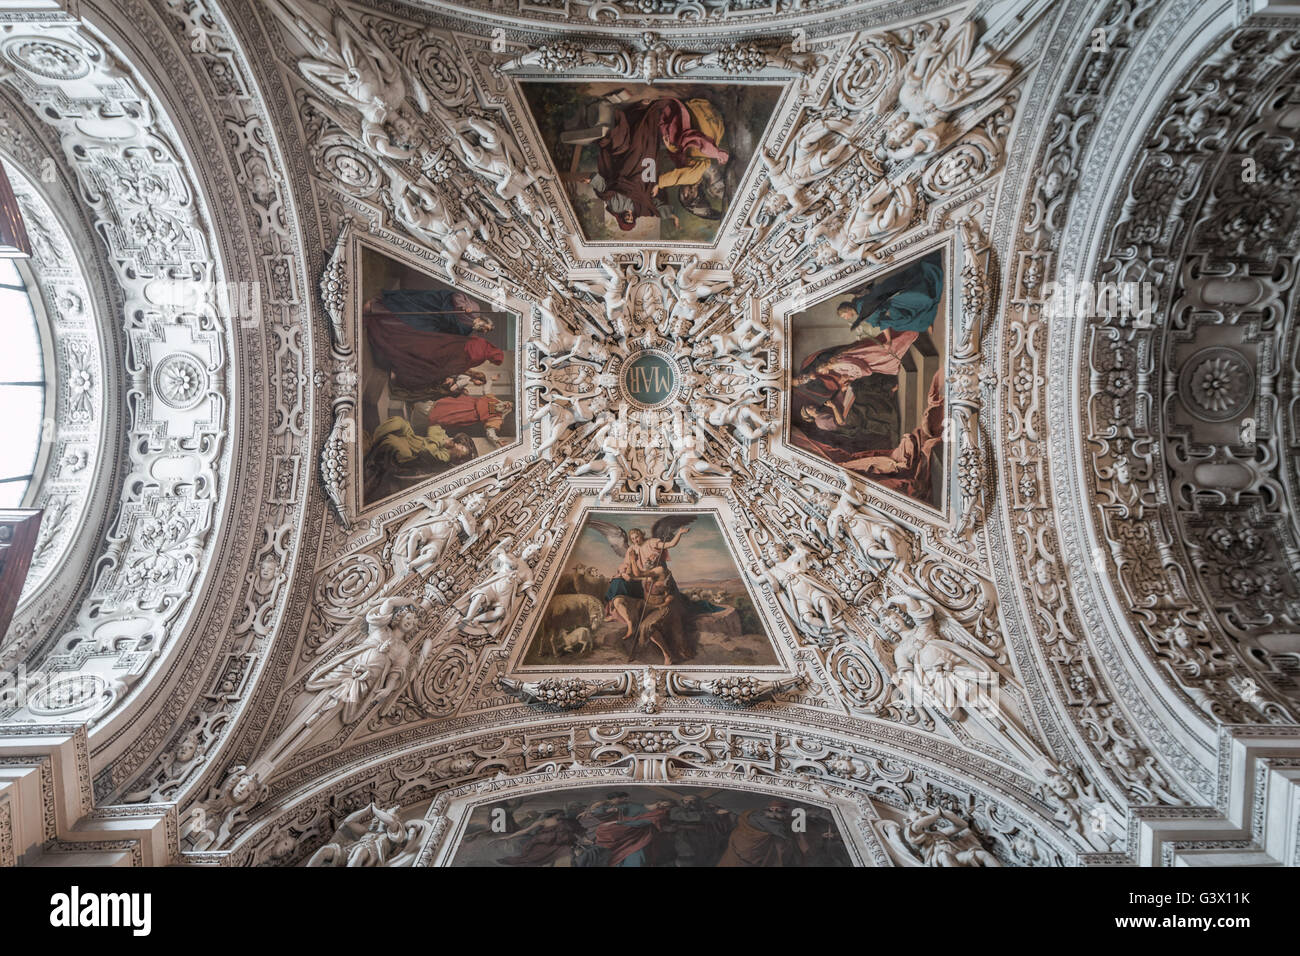 Ceiling of Salzburg Cathedral Stock Photo